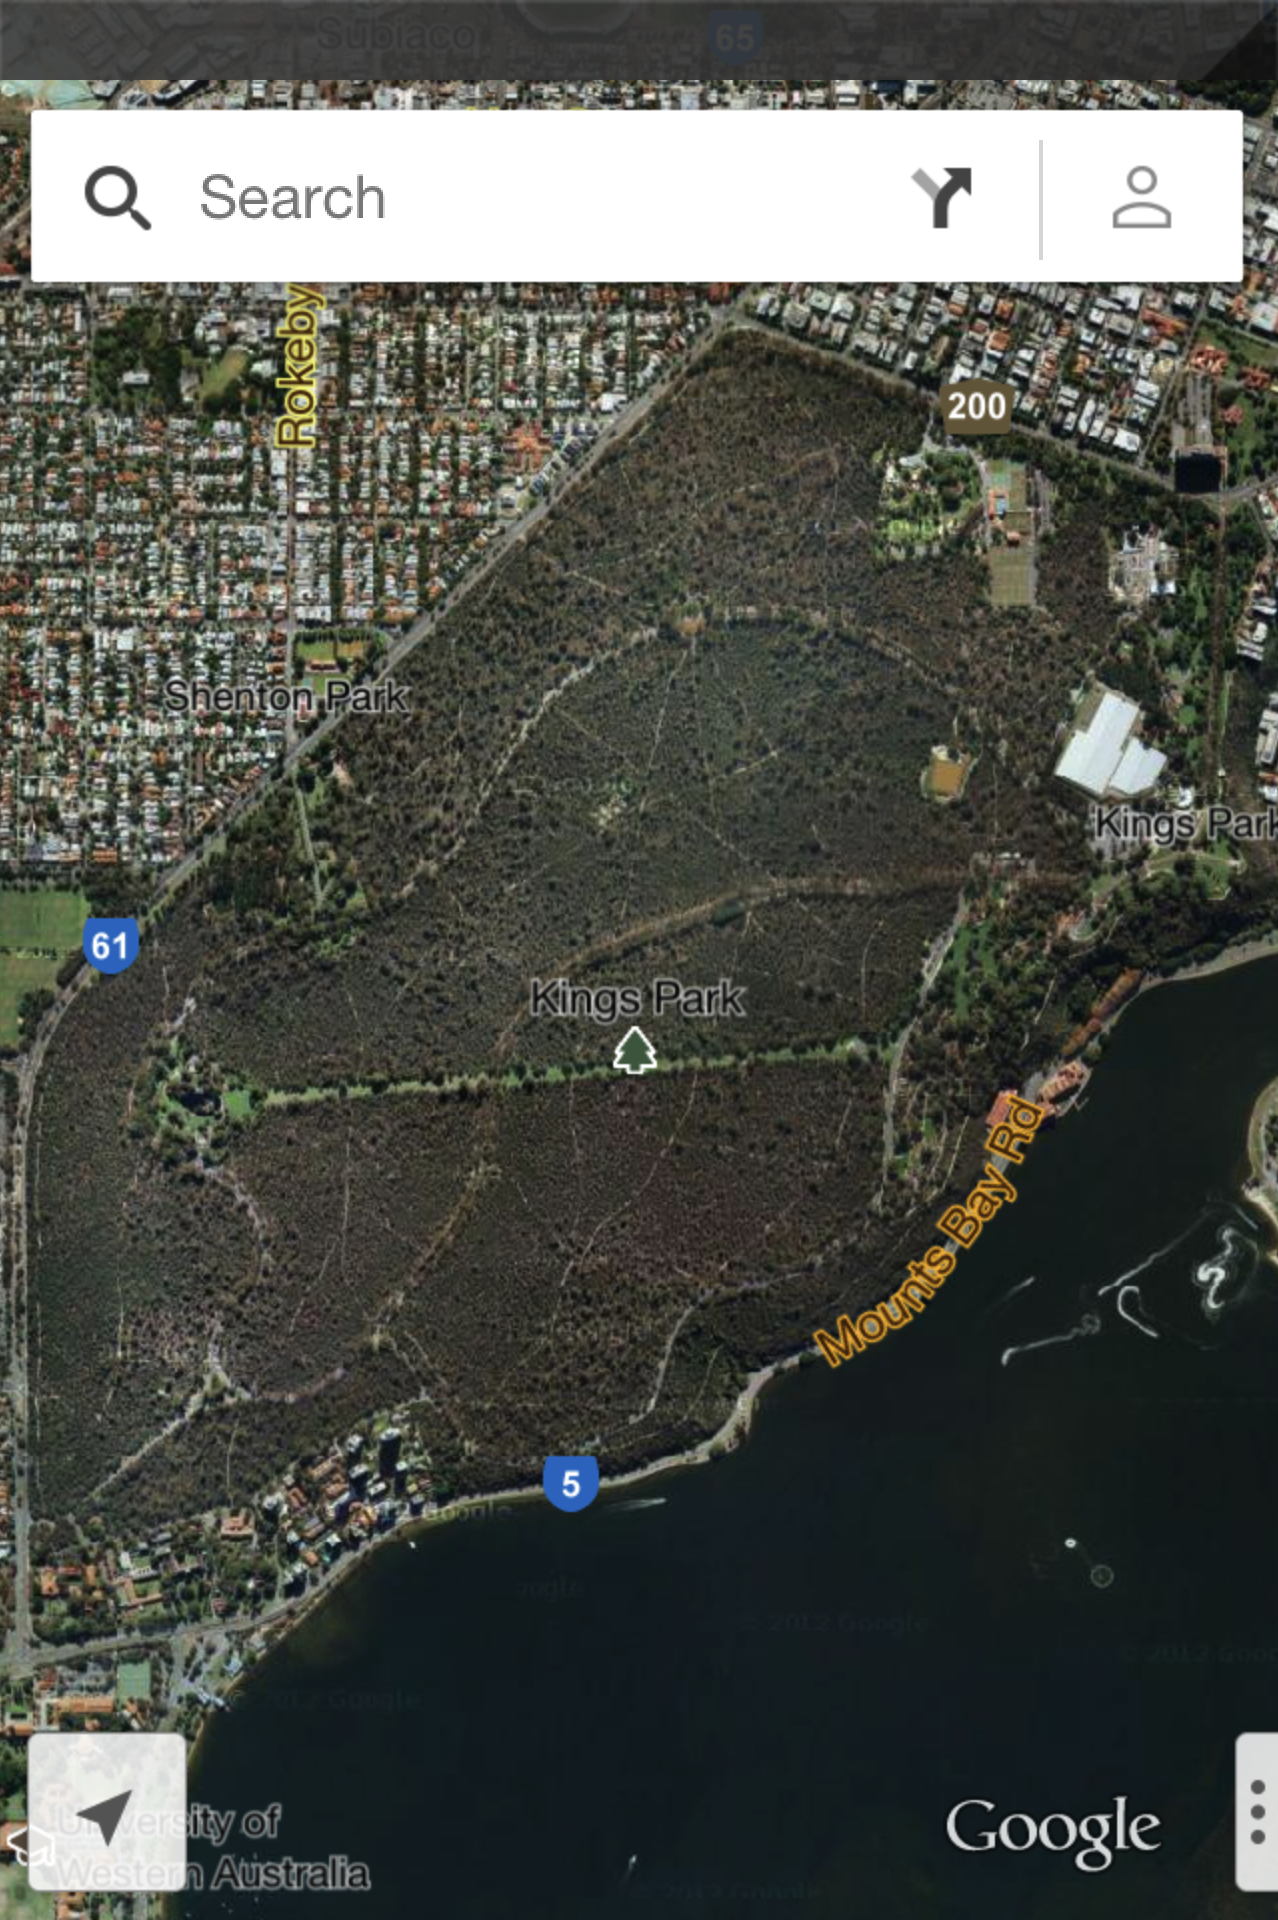 Kings Park Perth from the Google Maps App